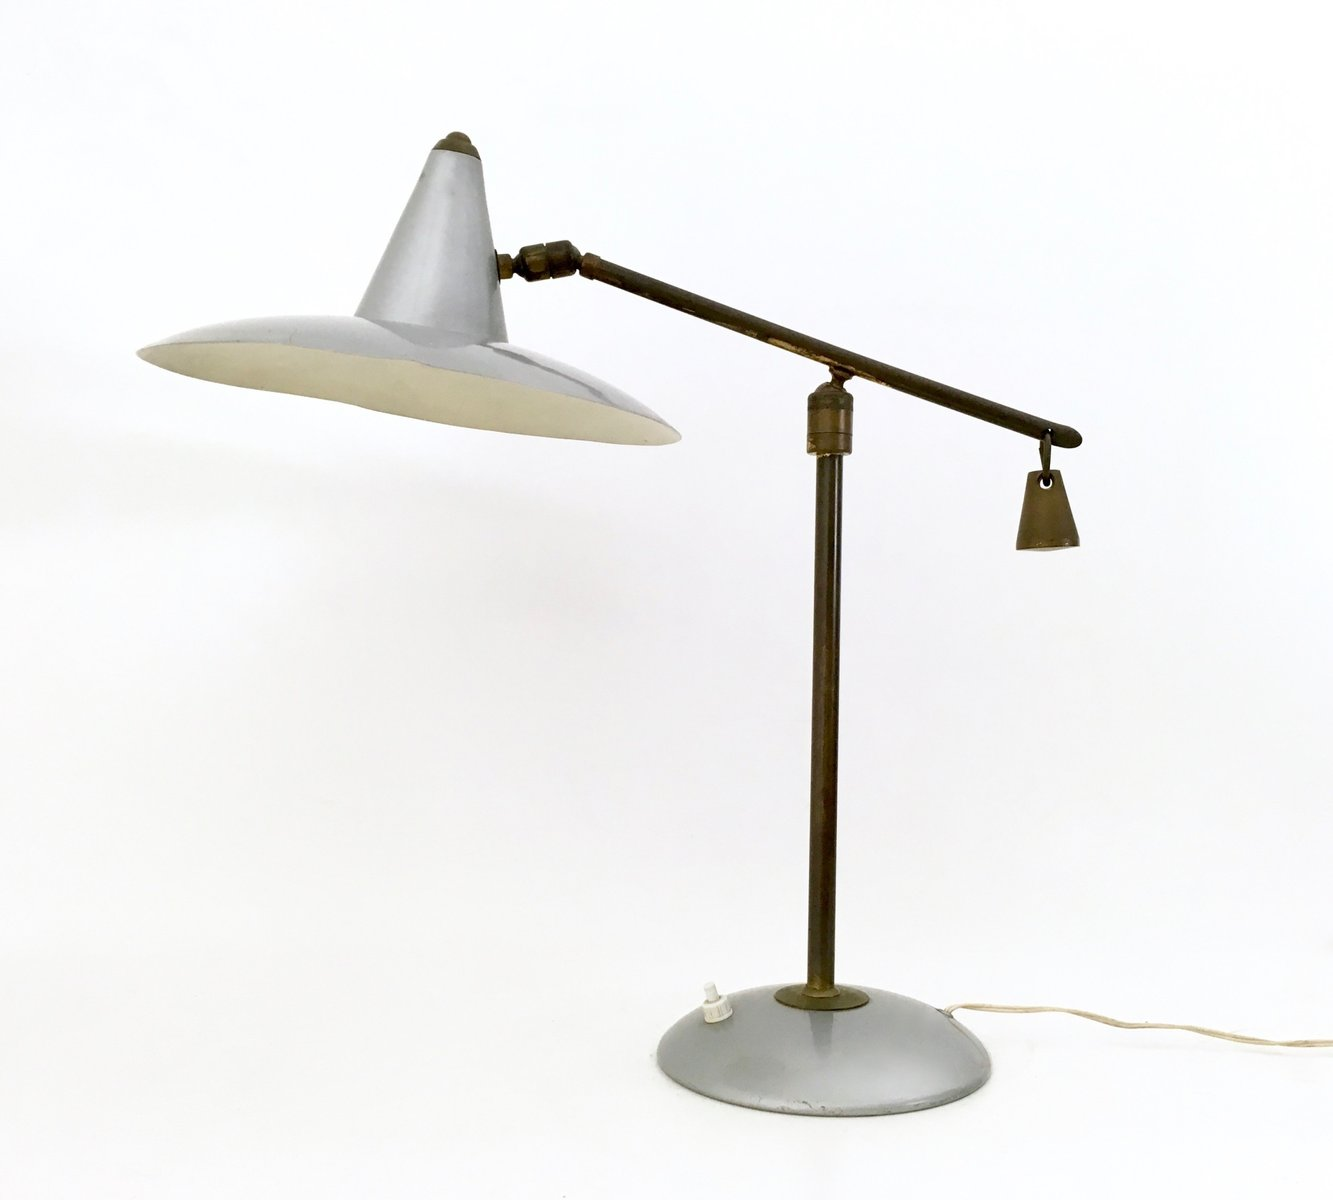 Brass varnished metal table lamp 1950s for sale at pamono brass varnished metal table lamp 1950s mozeypictures Image collections